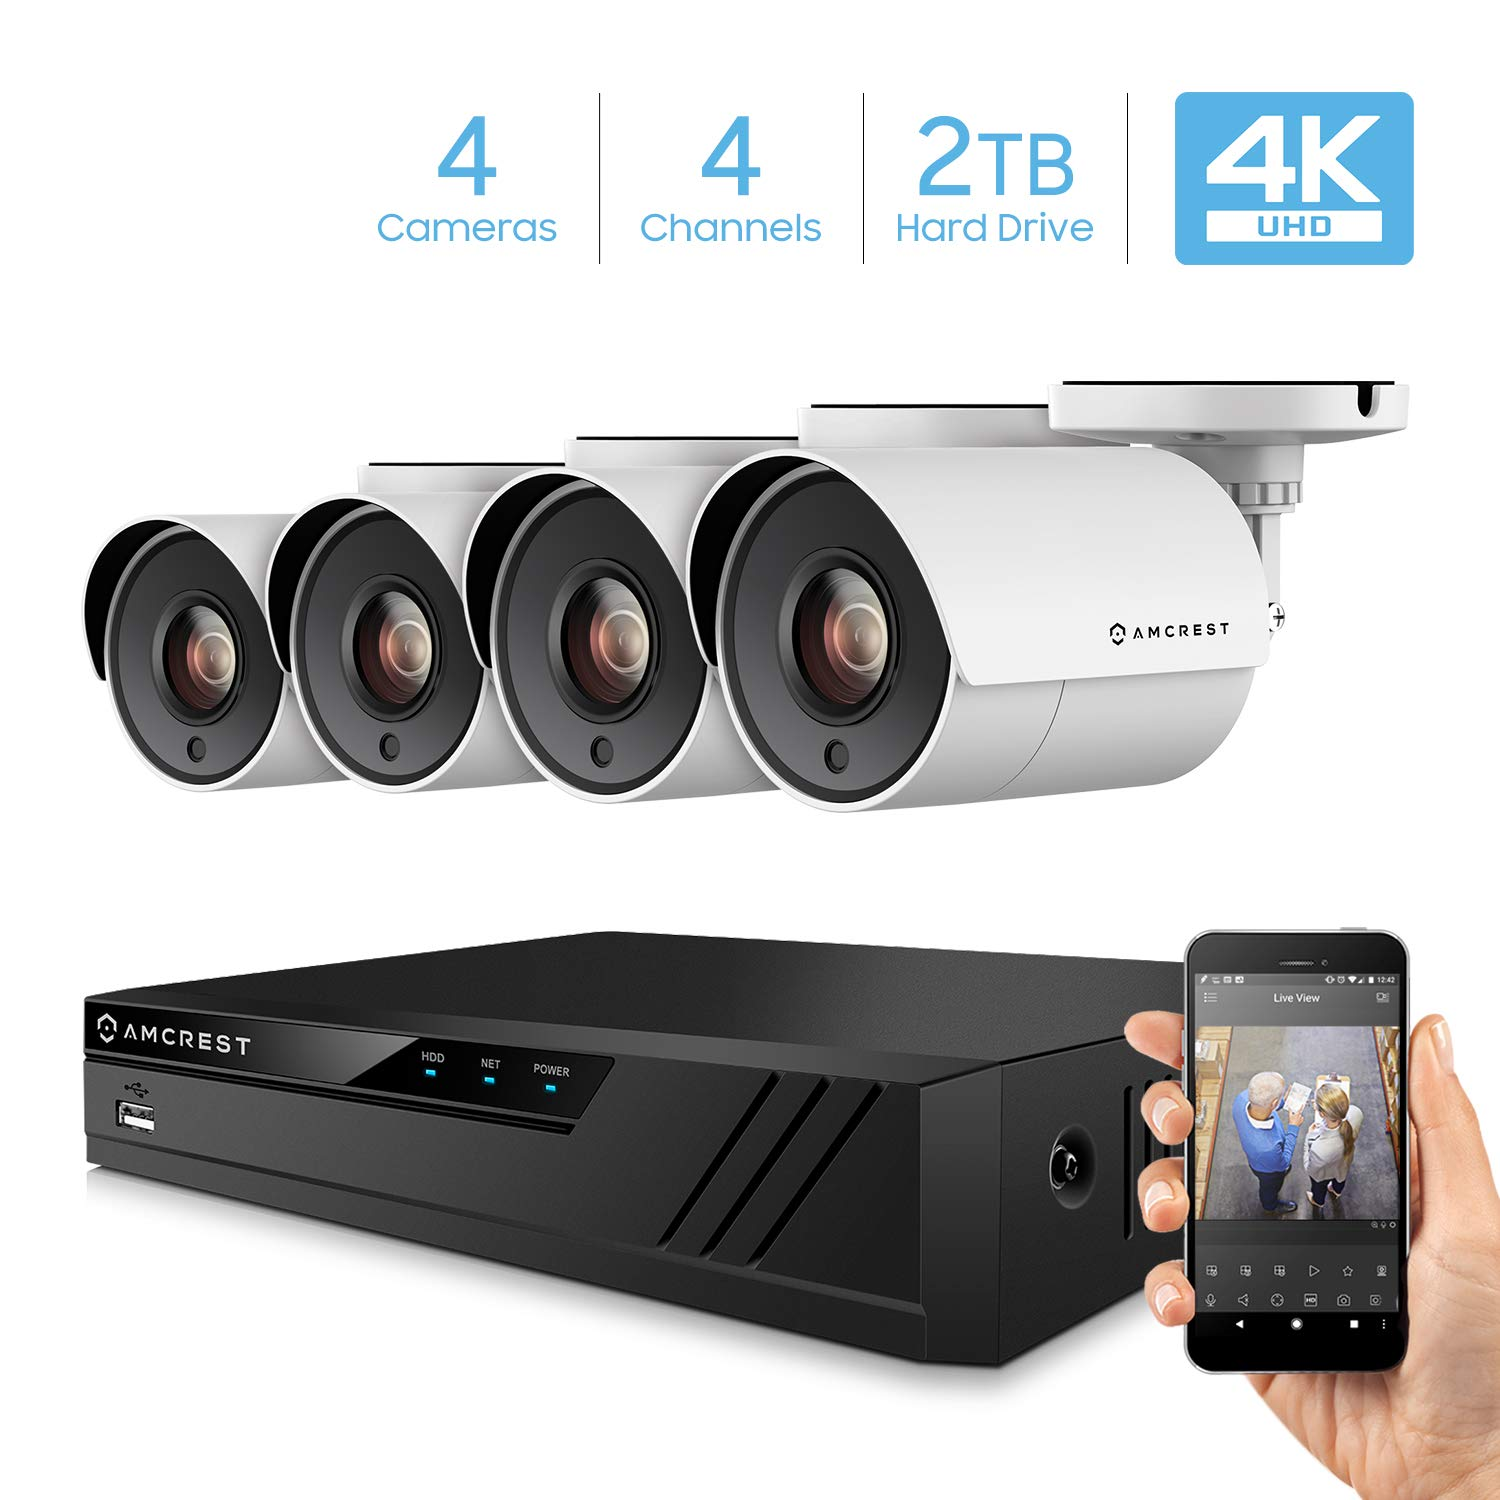 Amcrest 4K Security Camera System 4CH 8MP Video DVR with 4X 4K 8-Megapixel Indoor Outdoor Weatherproof IP67 Cameras, 2TB Hard Drive, 100ft Night Vision, for Home Business AMDV80M4-4B-W